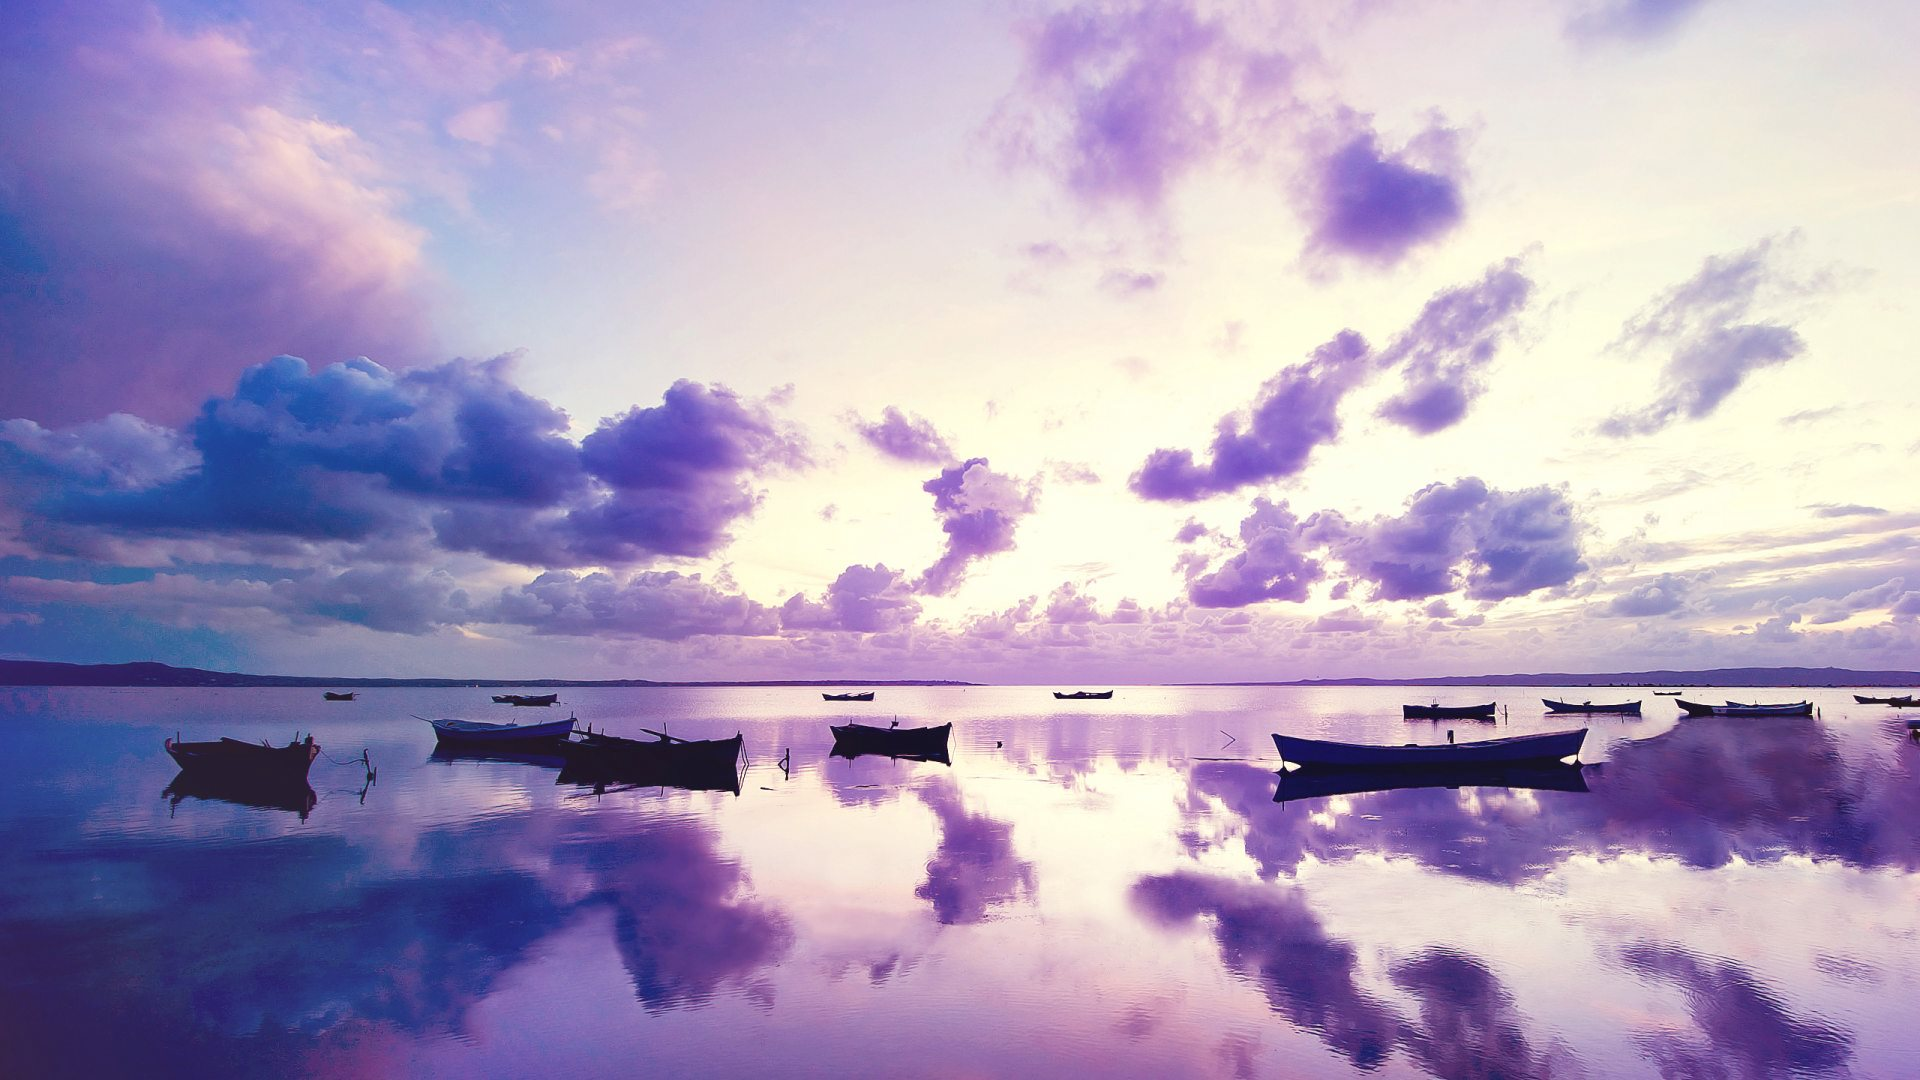 sky clouds reflection wallpaper background